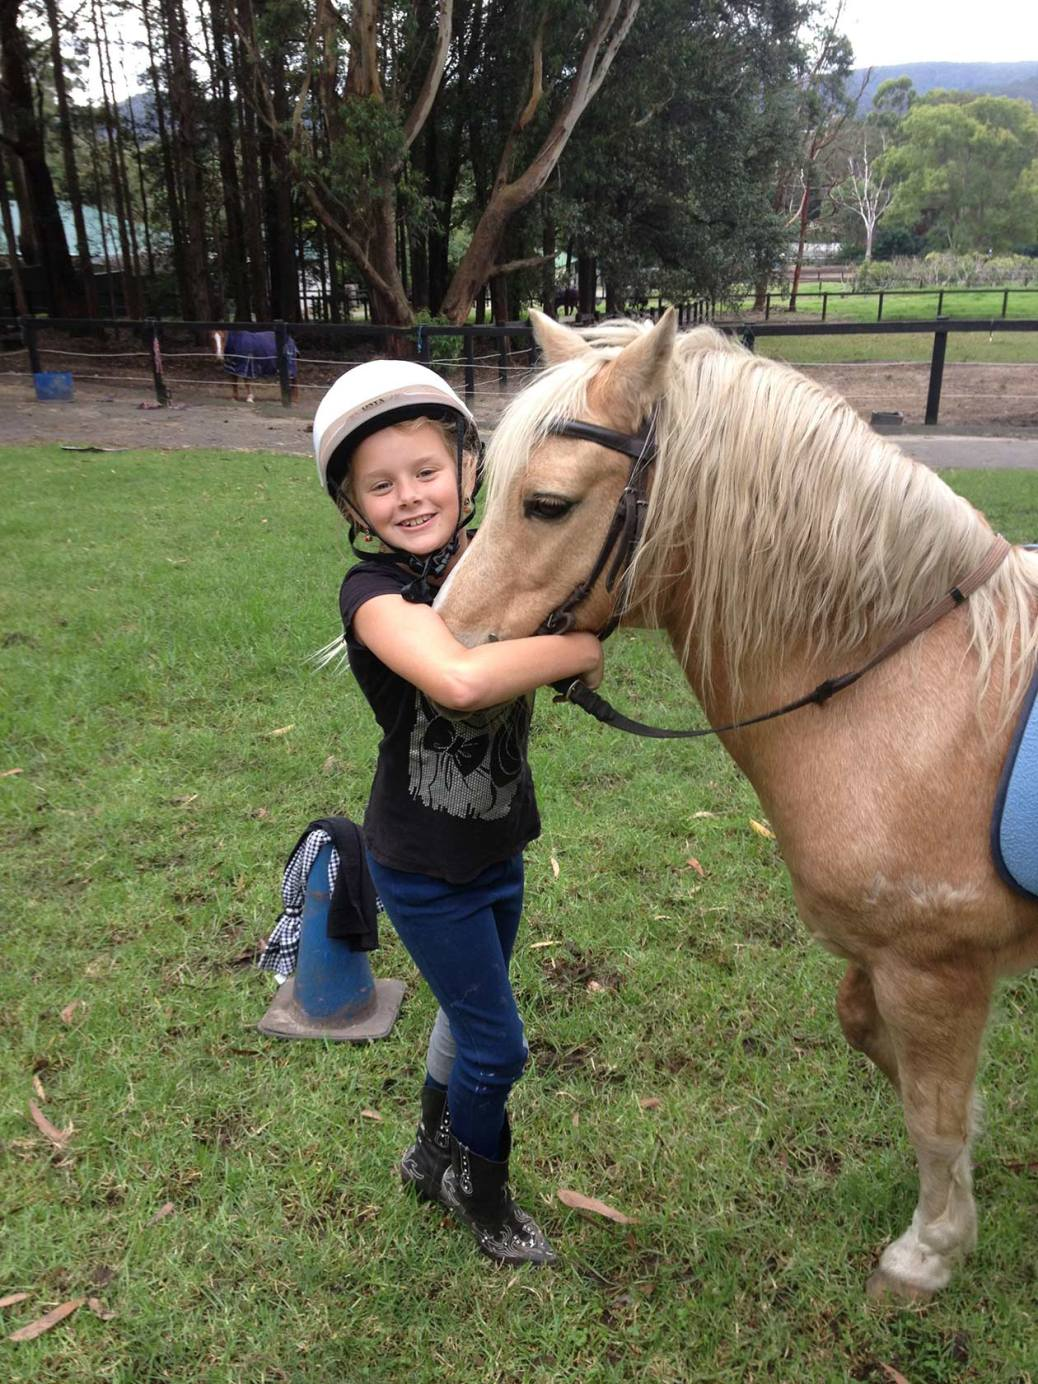 A young rider with a pony at HPRA.